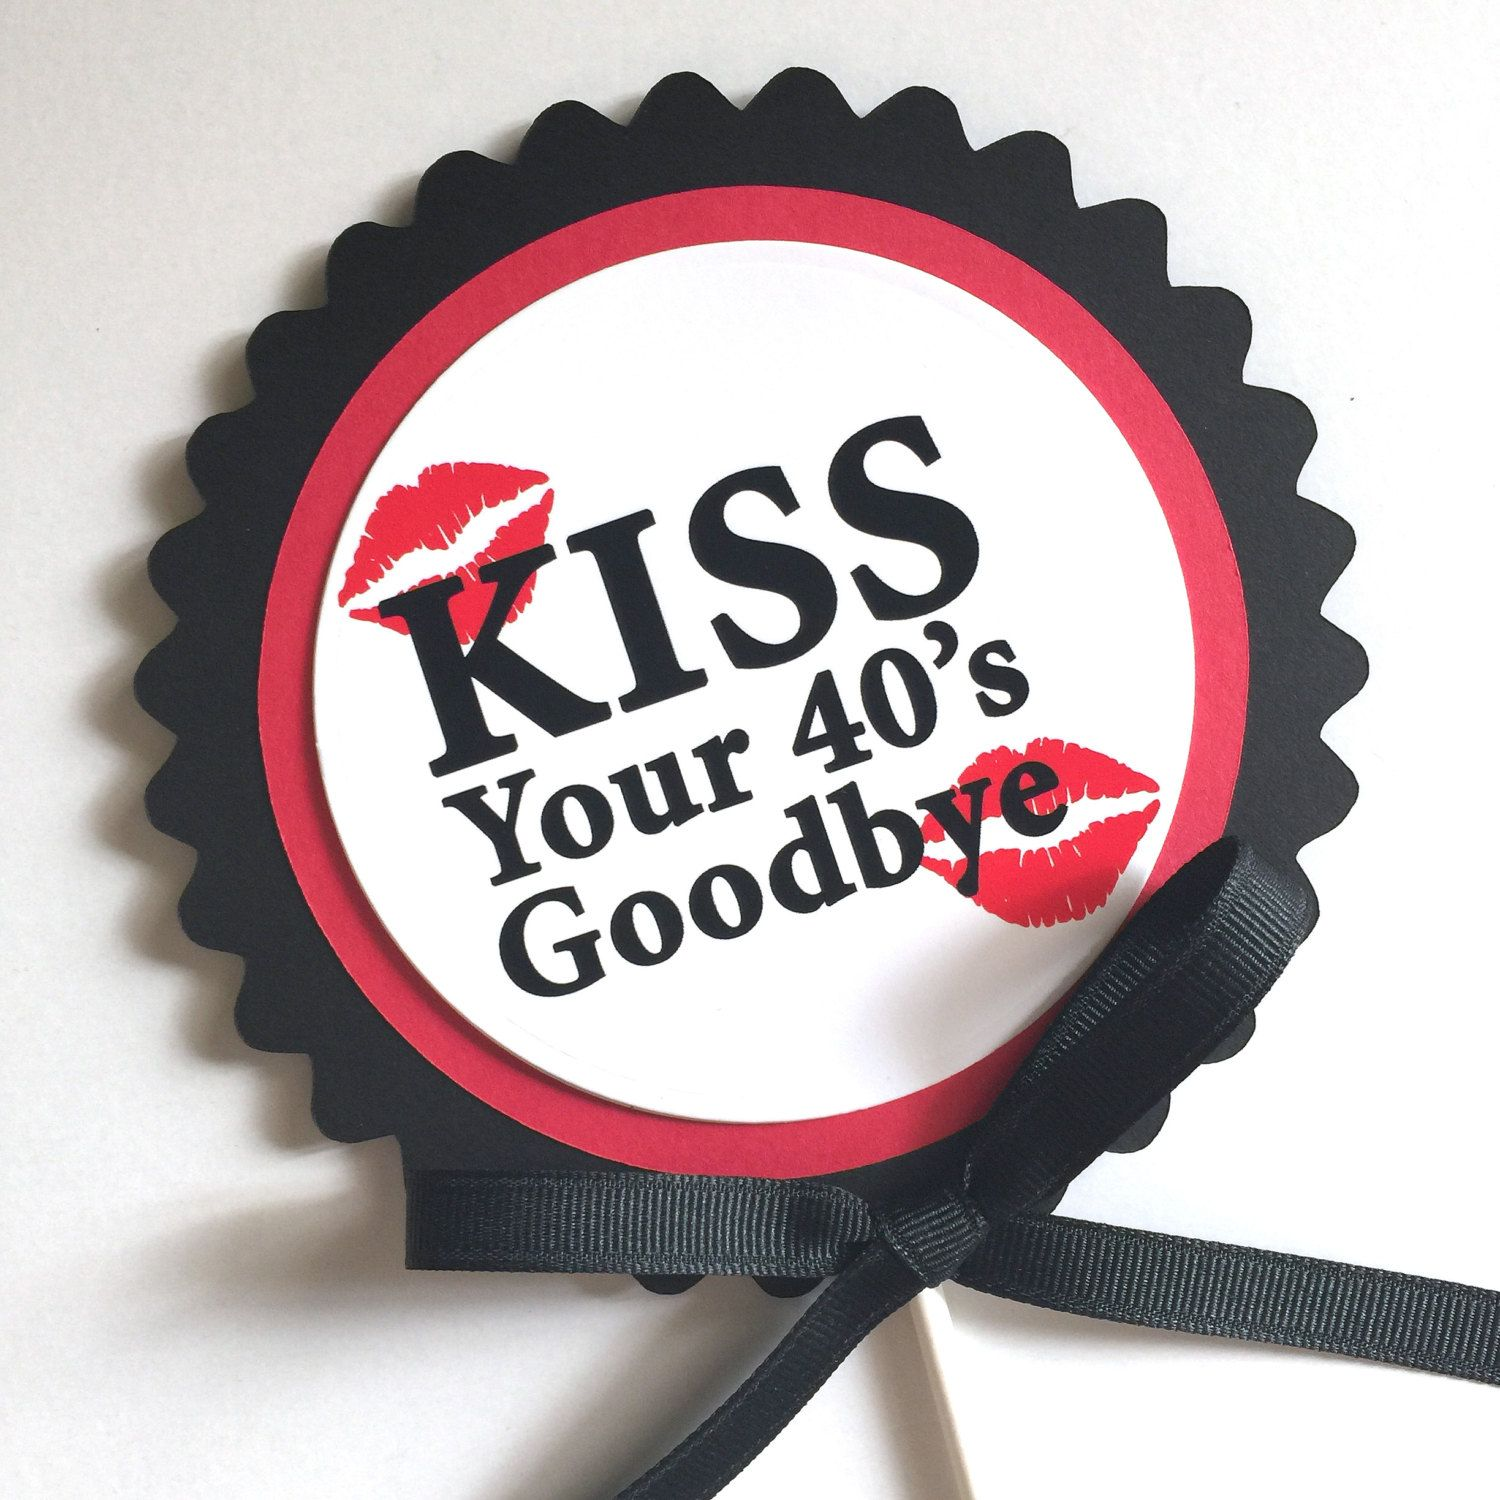 50th Birthday Kiss Your 40 S Goodbye Cake Topper Decoration Candy Pick Black Red And White Or Your Choice Of Col Goodbye Cake Birthday Kiss 50th Birthday